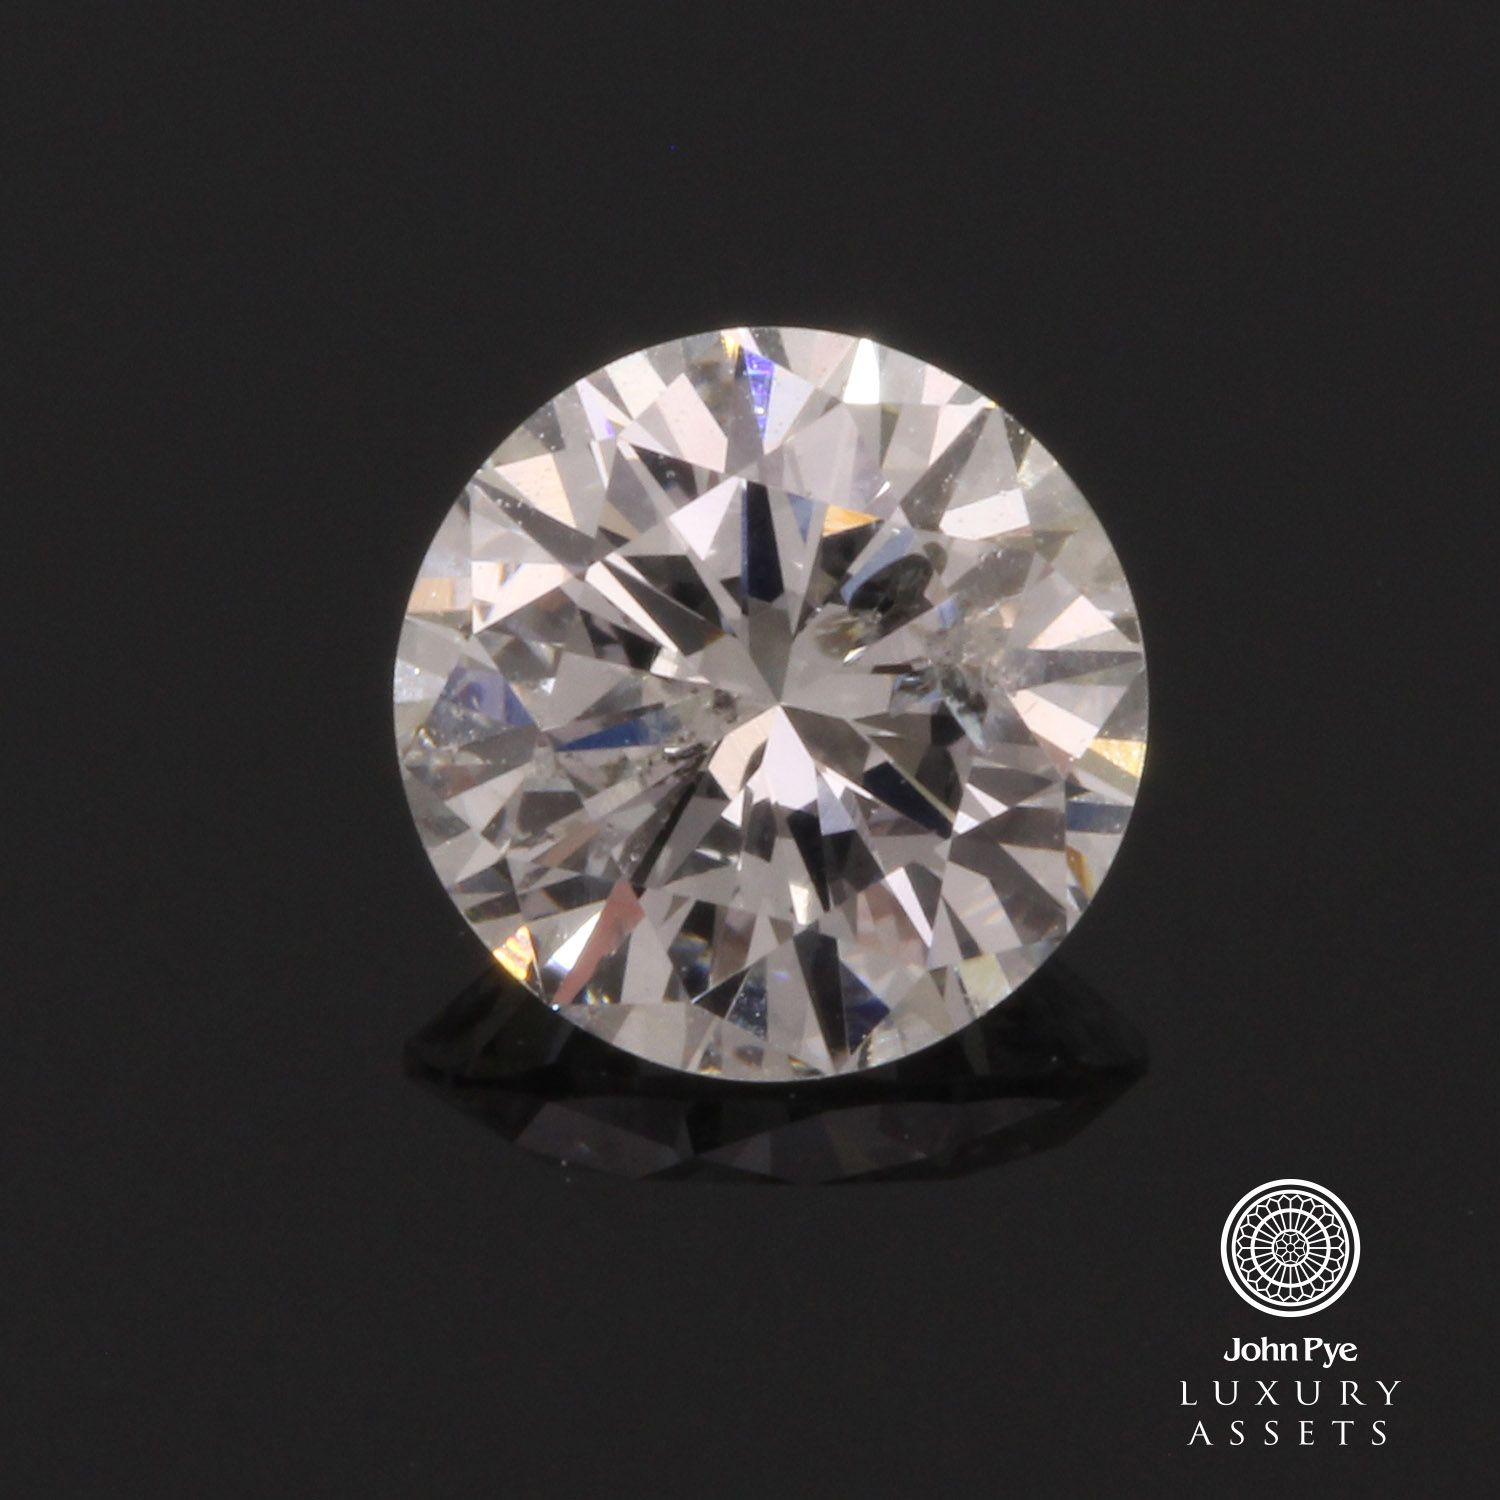 PUBLIC AUCTION: Selection of assorted loose diamonds in various cuts and sizes ranging between 0.02 carats - 1.52 carats #diamonds #gemstones #onlineauction